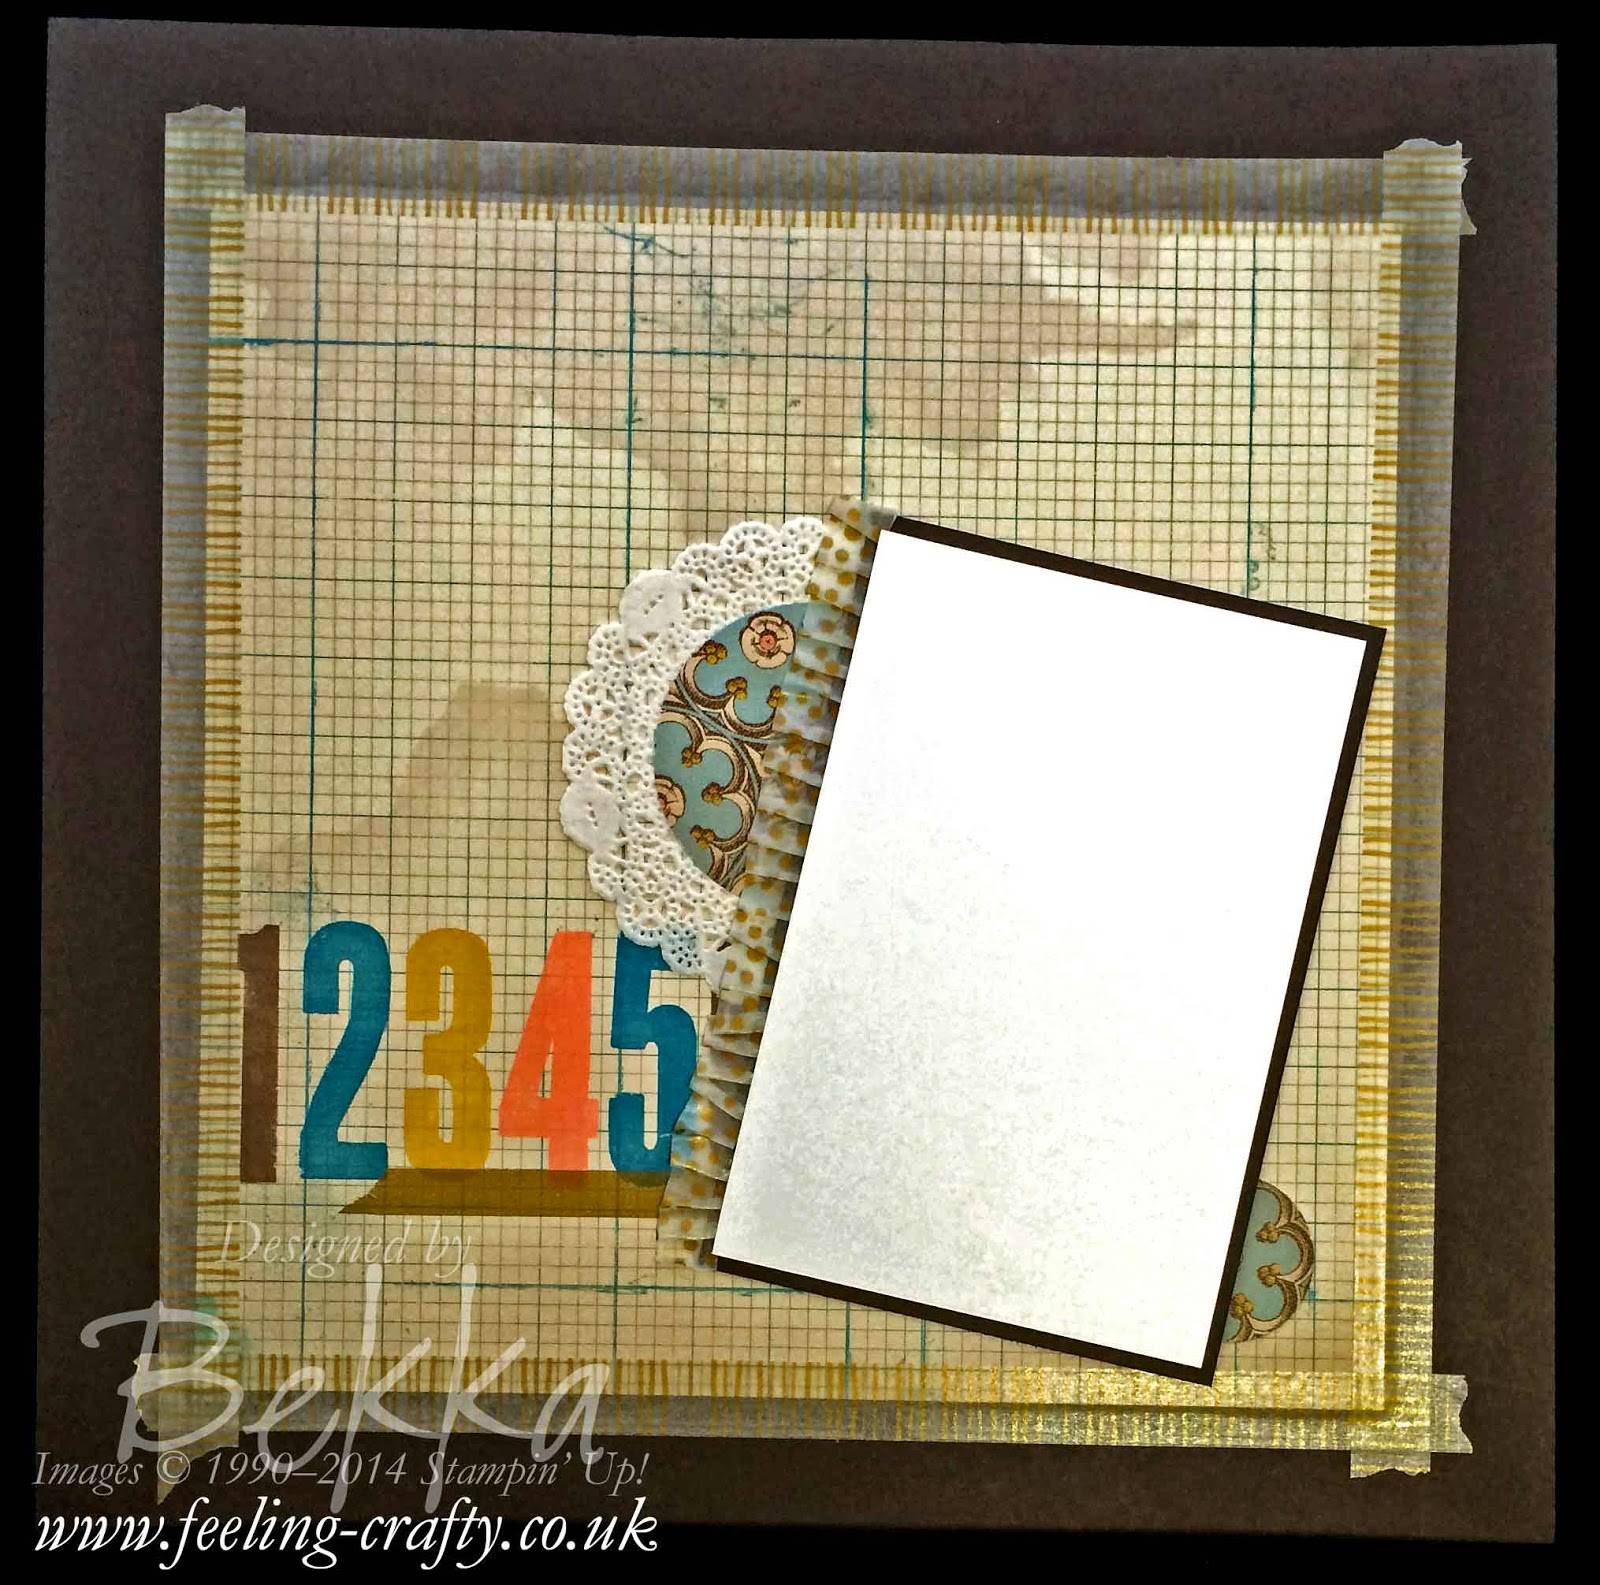 Fast, Fun and Fabulous Scrapbook Page showing how easy Scrapping Can be - more details here